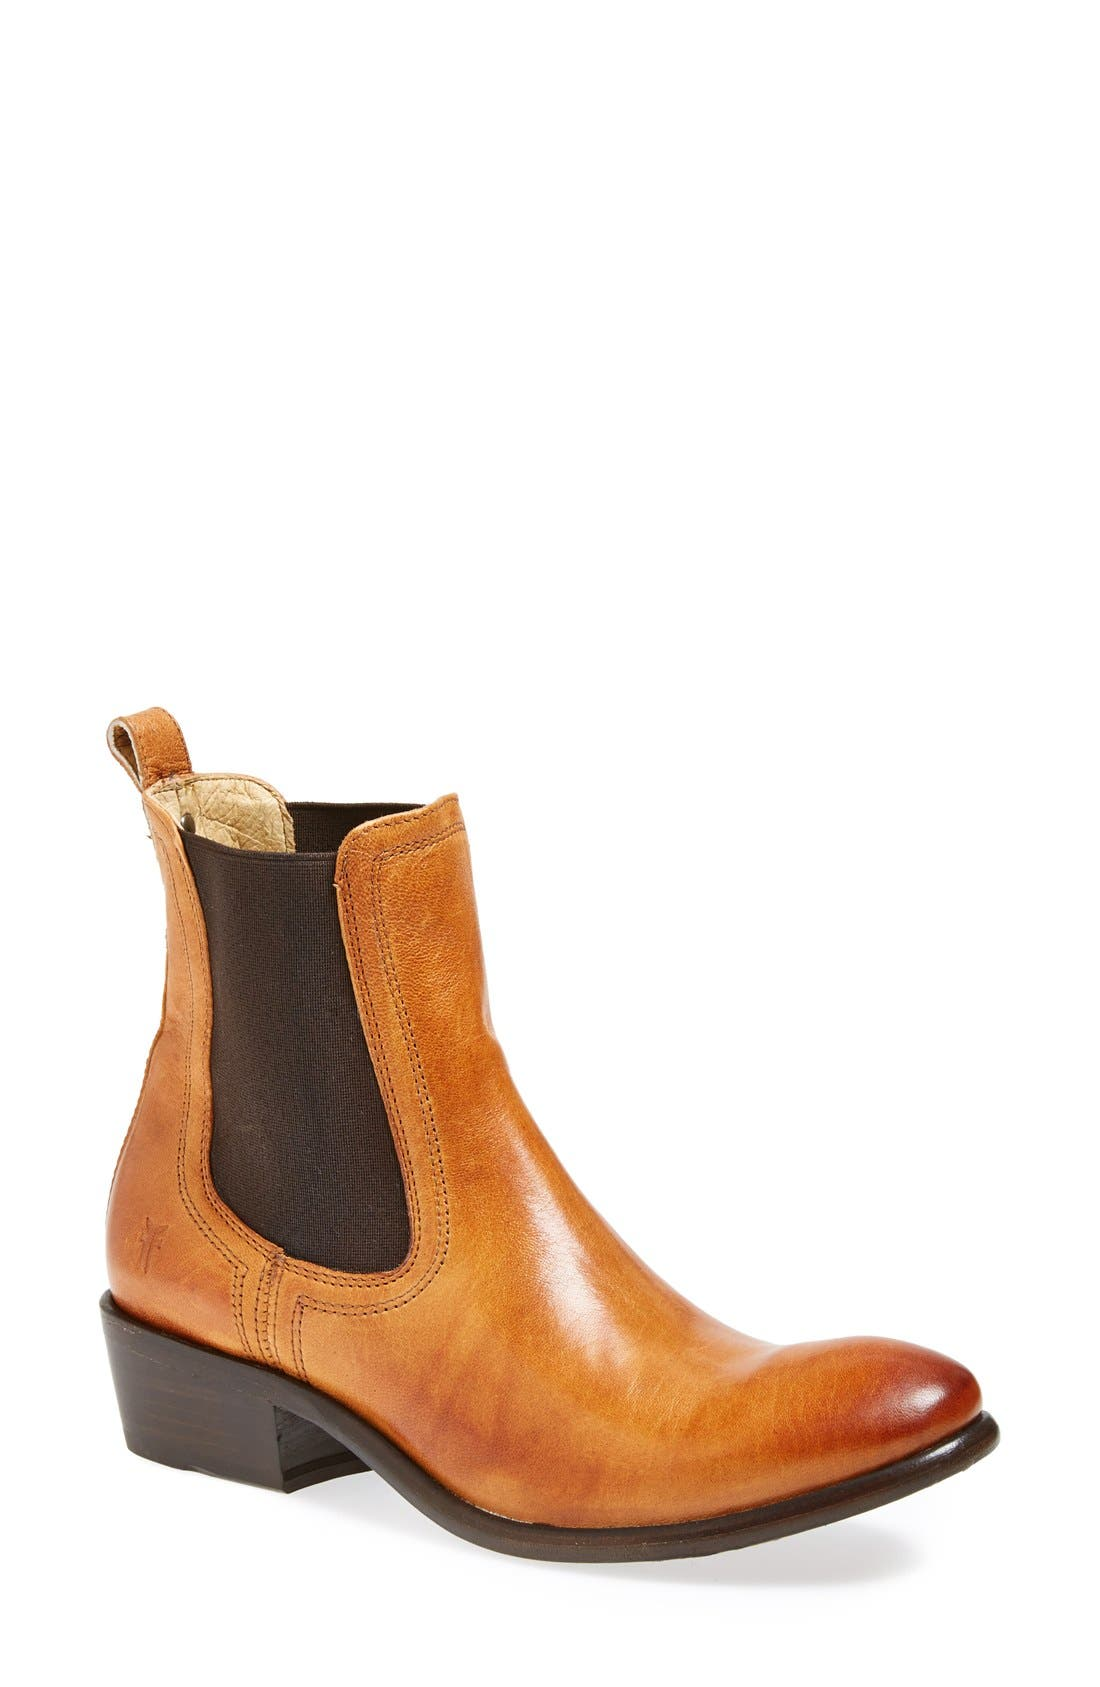 Alternate Image 1 Selected - Frye 'Carson' Chelsea Boot